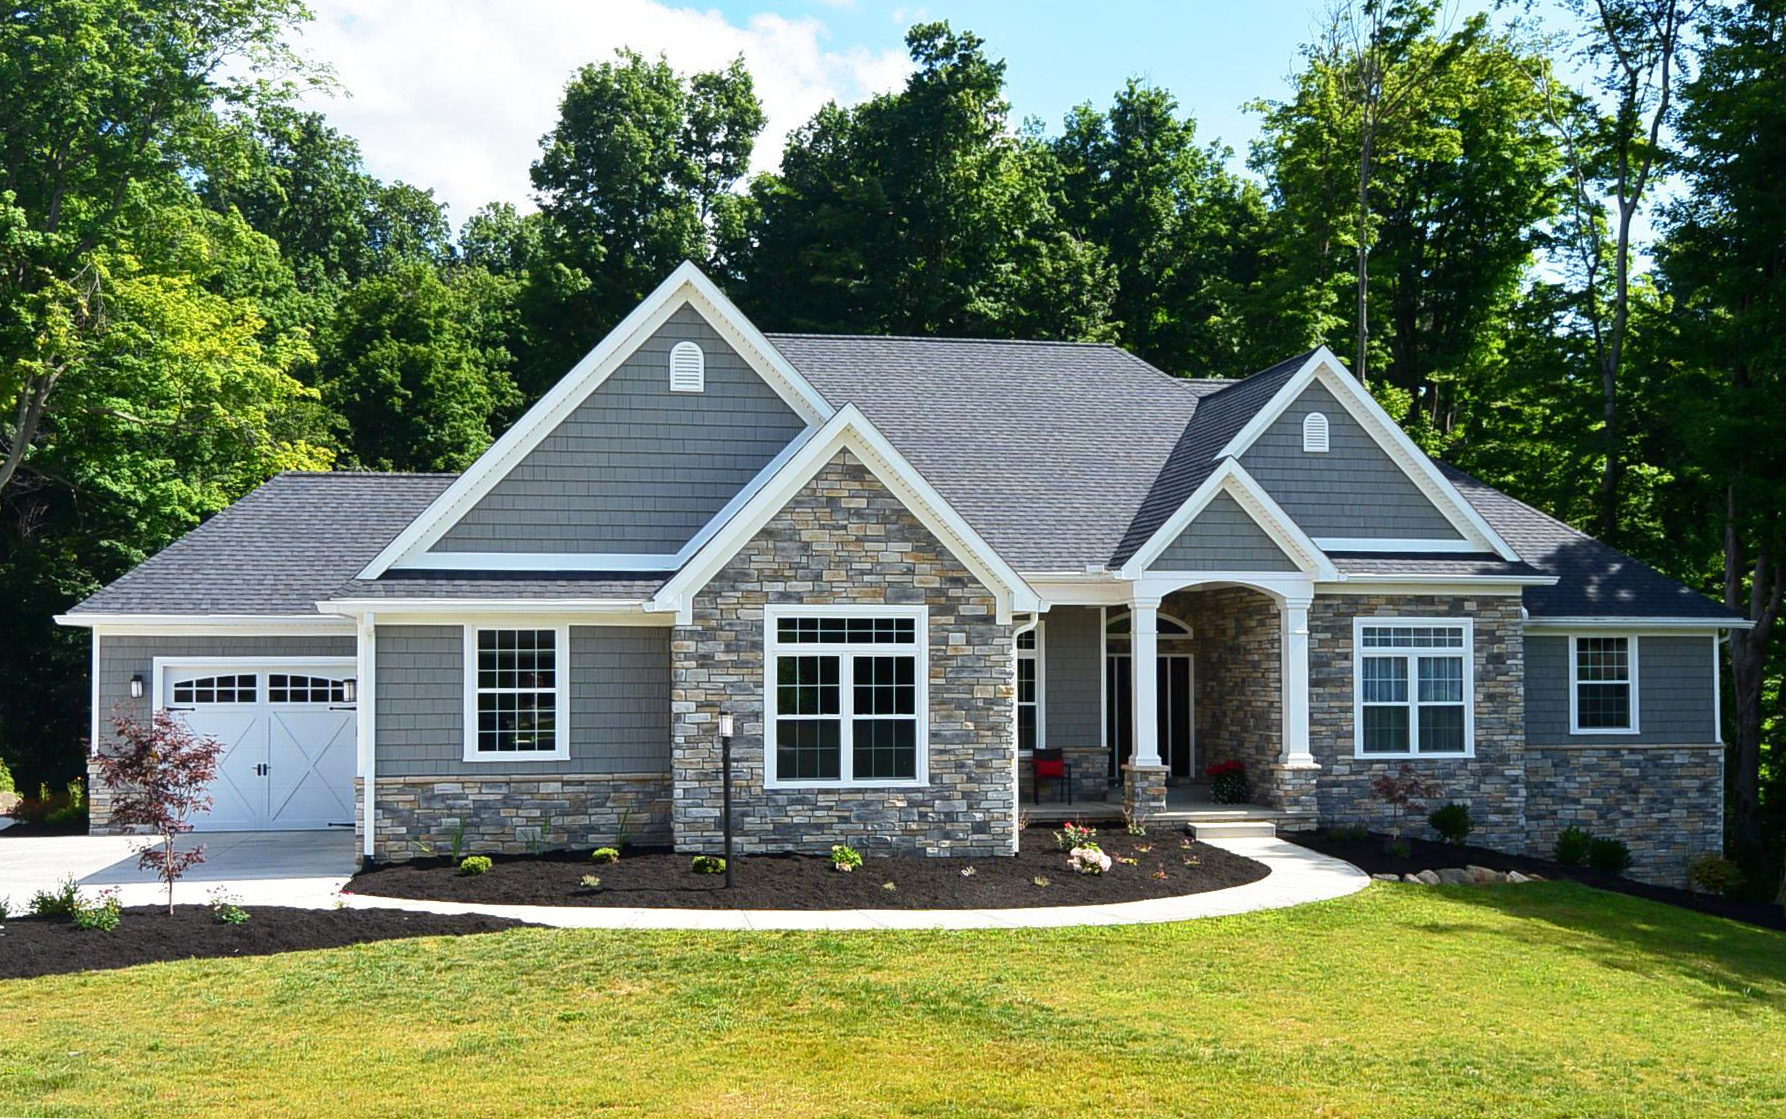 rambler style home, rambler house plans and designs, layout of a house with garage, ranch house with side garage, rambler house without garage, home plans side garage, on rambler house plan with side entry garage